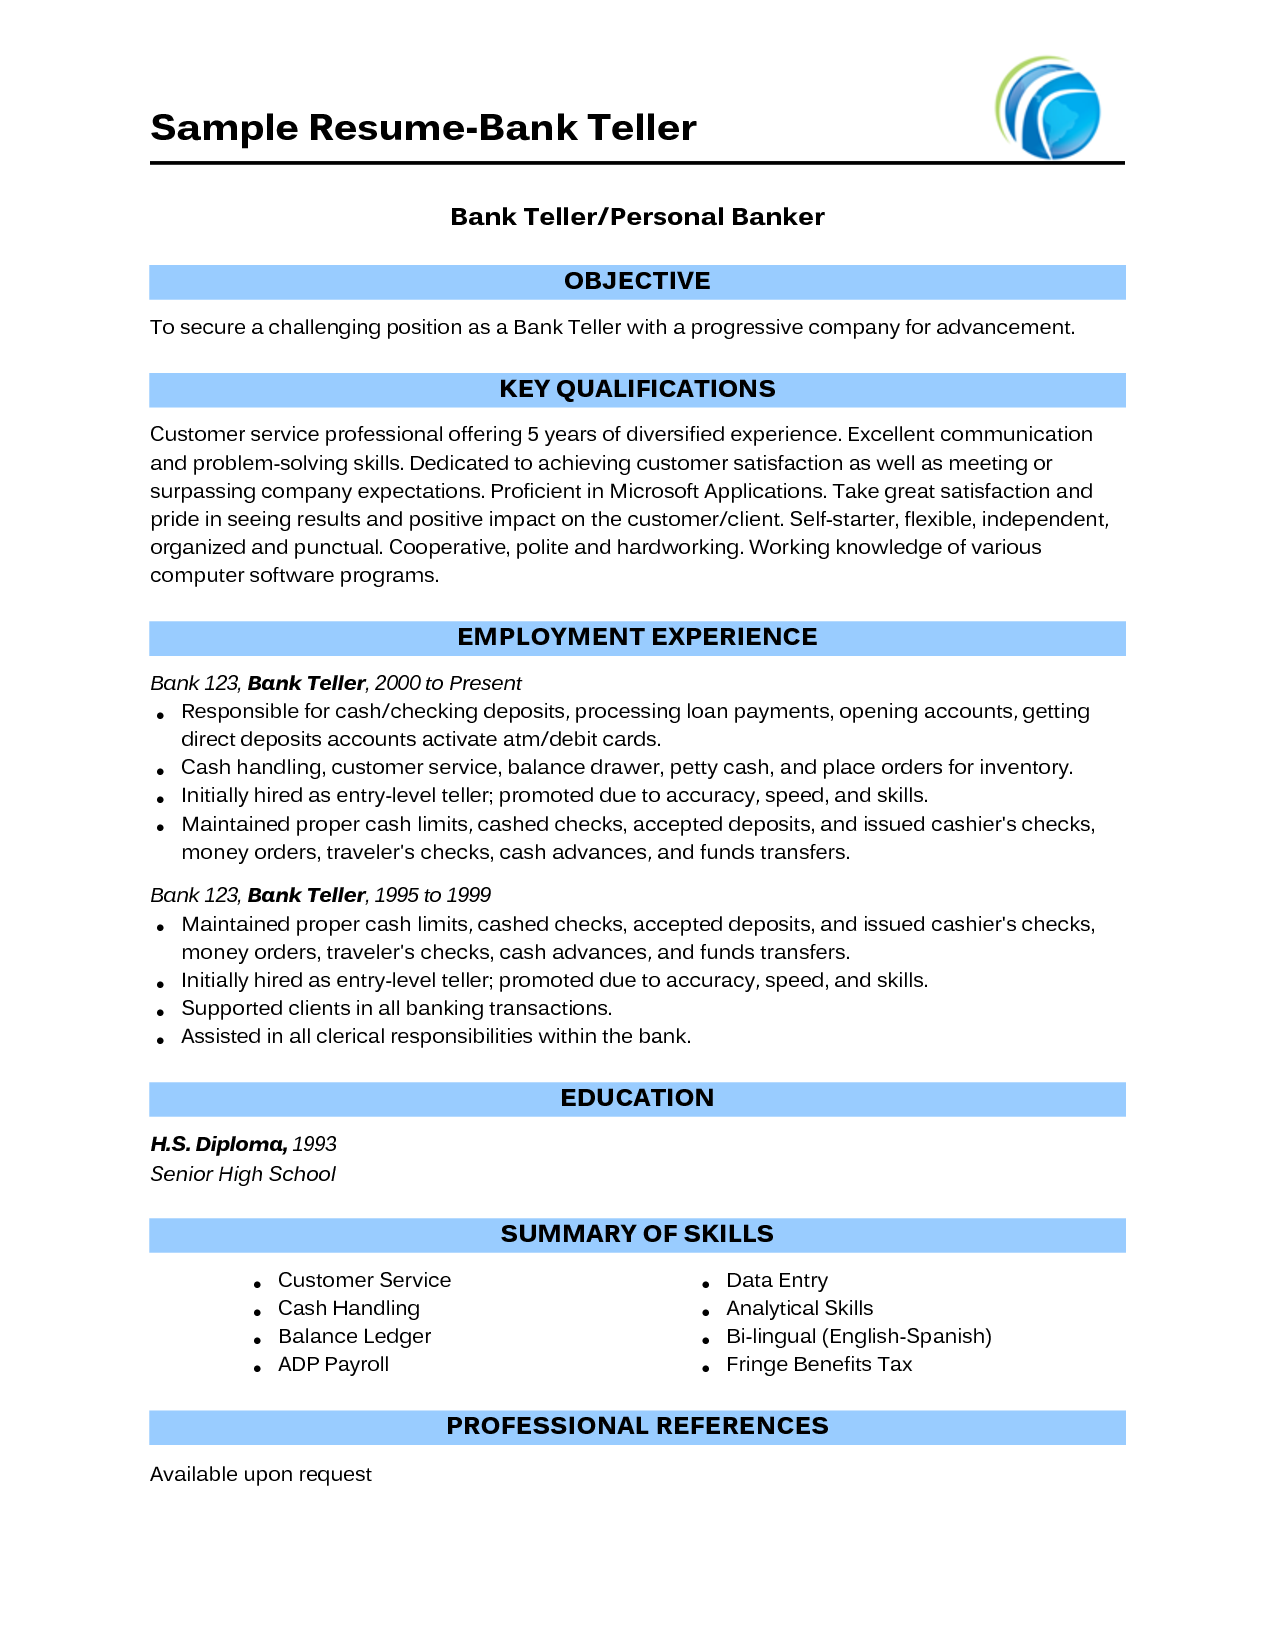 Resume Keywords For Bank Teller Resume teller skills resume sample for bank banking with no experience http www resumecareer